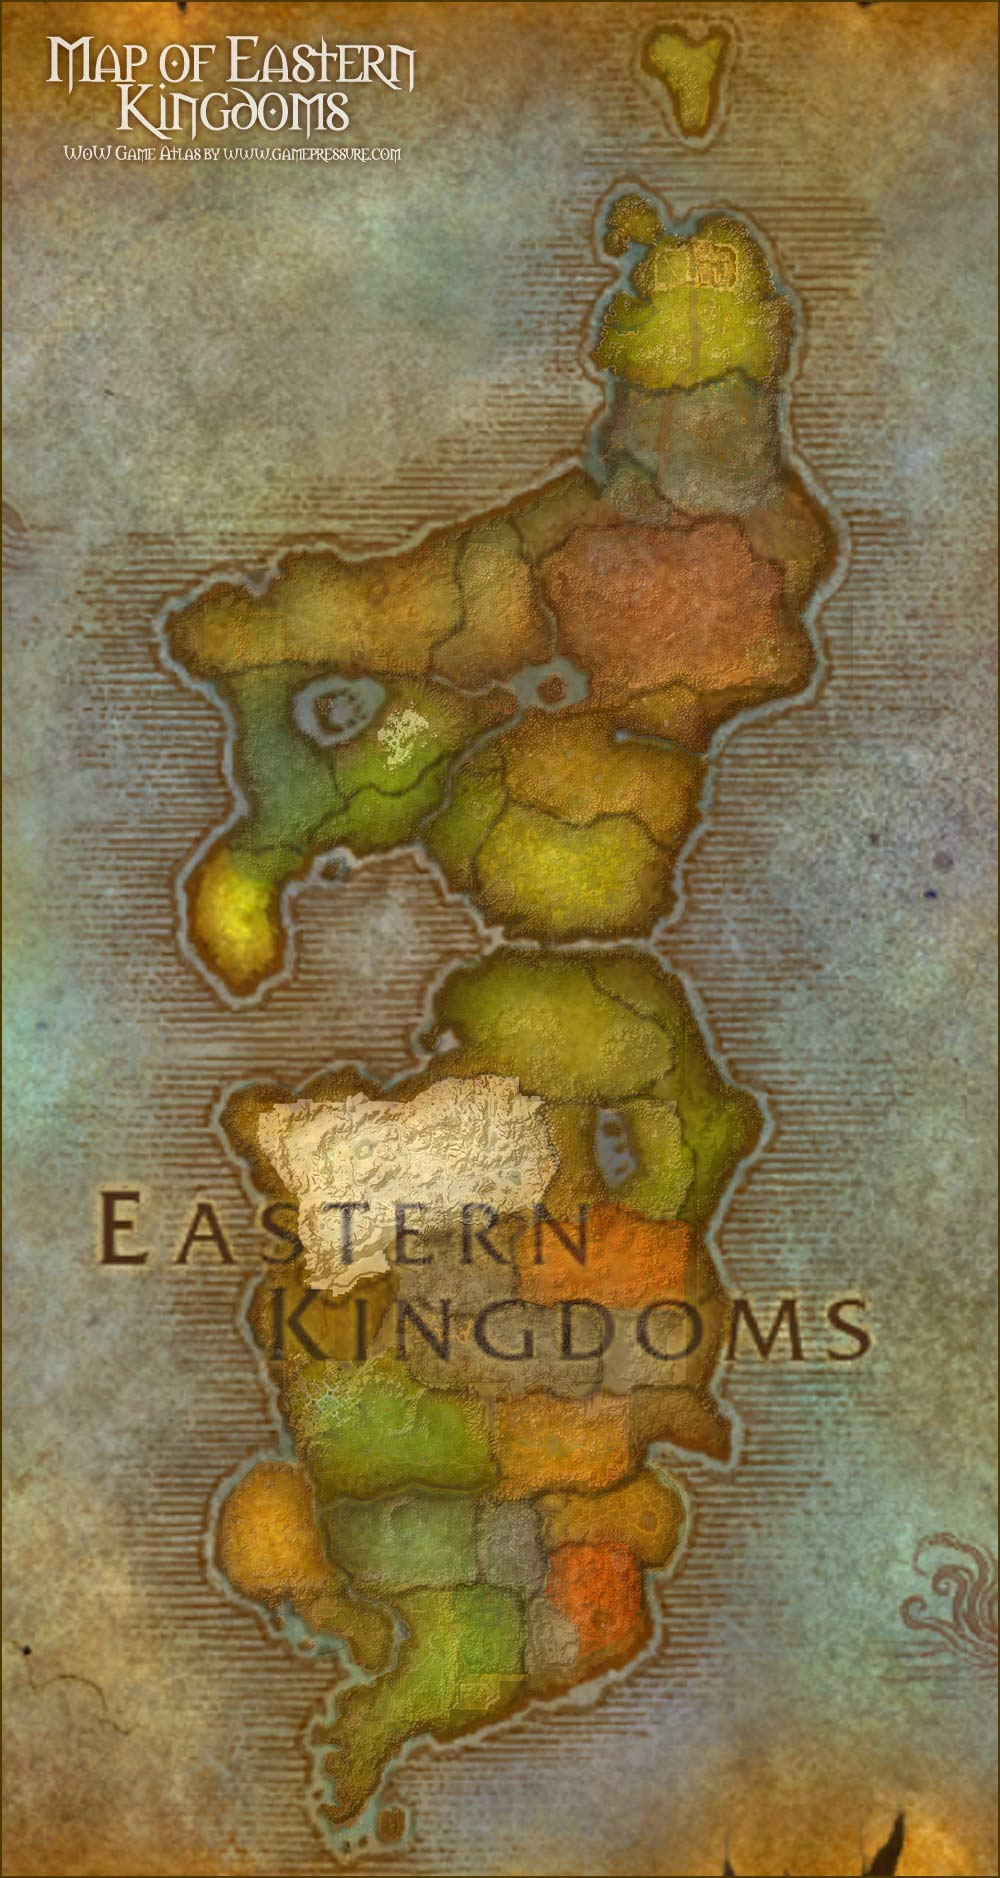 Eastern Kingdoms Map Map of Eastern Kingdoms   World of Warcraft